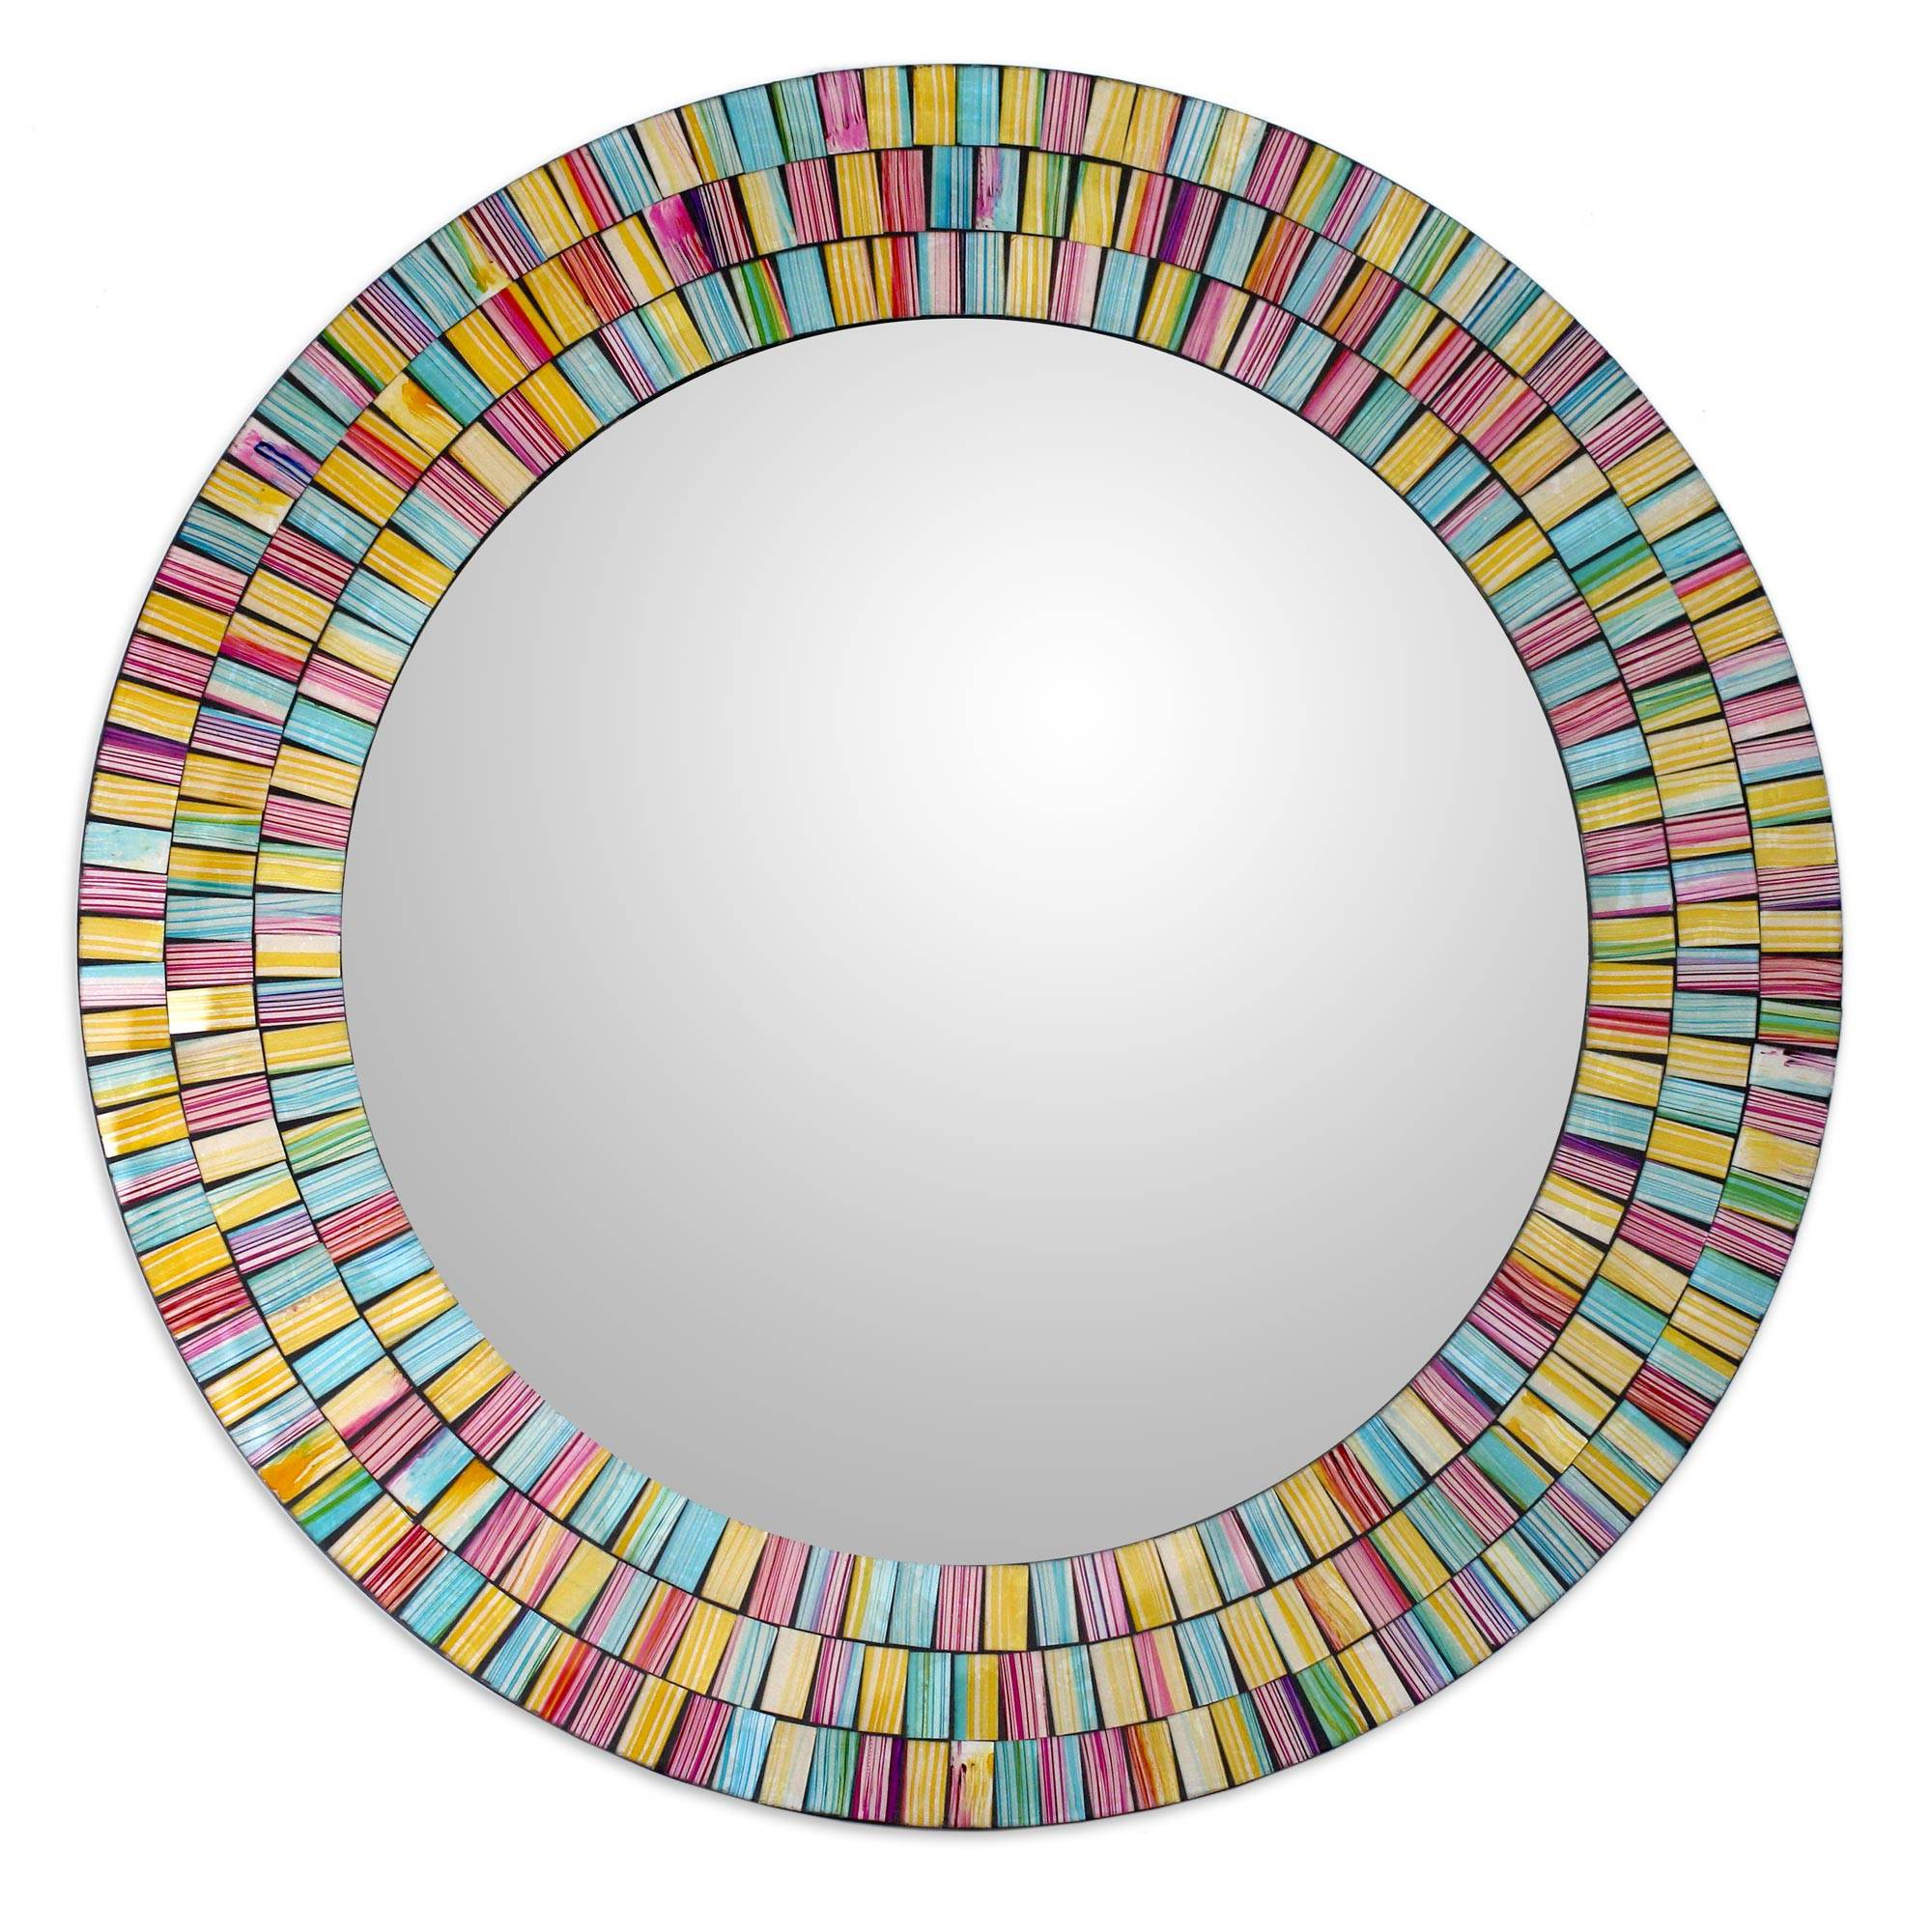 Artisan Crafted Glass Mosaic Wall Mirror In Many Throughout Most Recently Released Colorful Wall Mirrors (View 16 of 20)